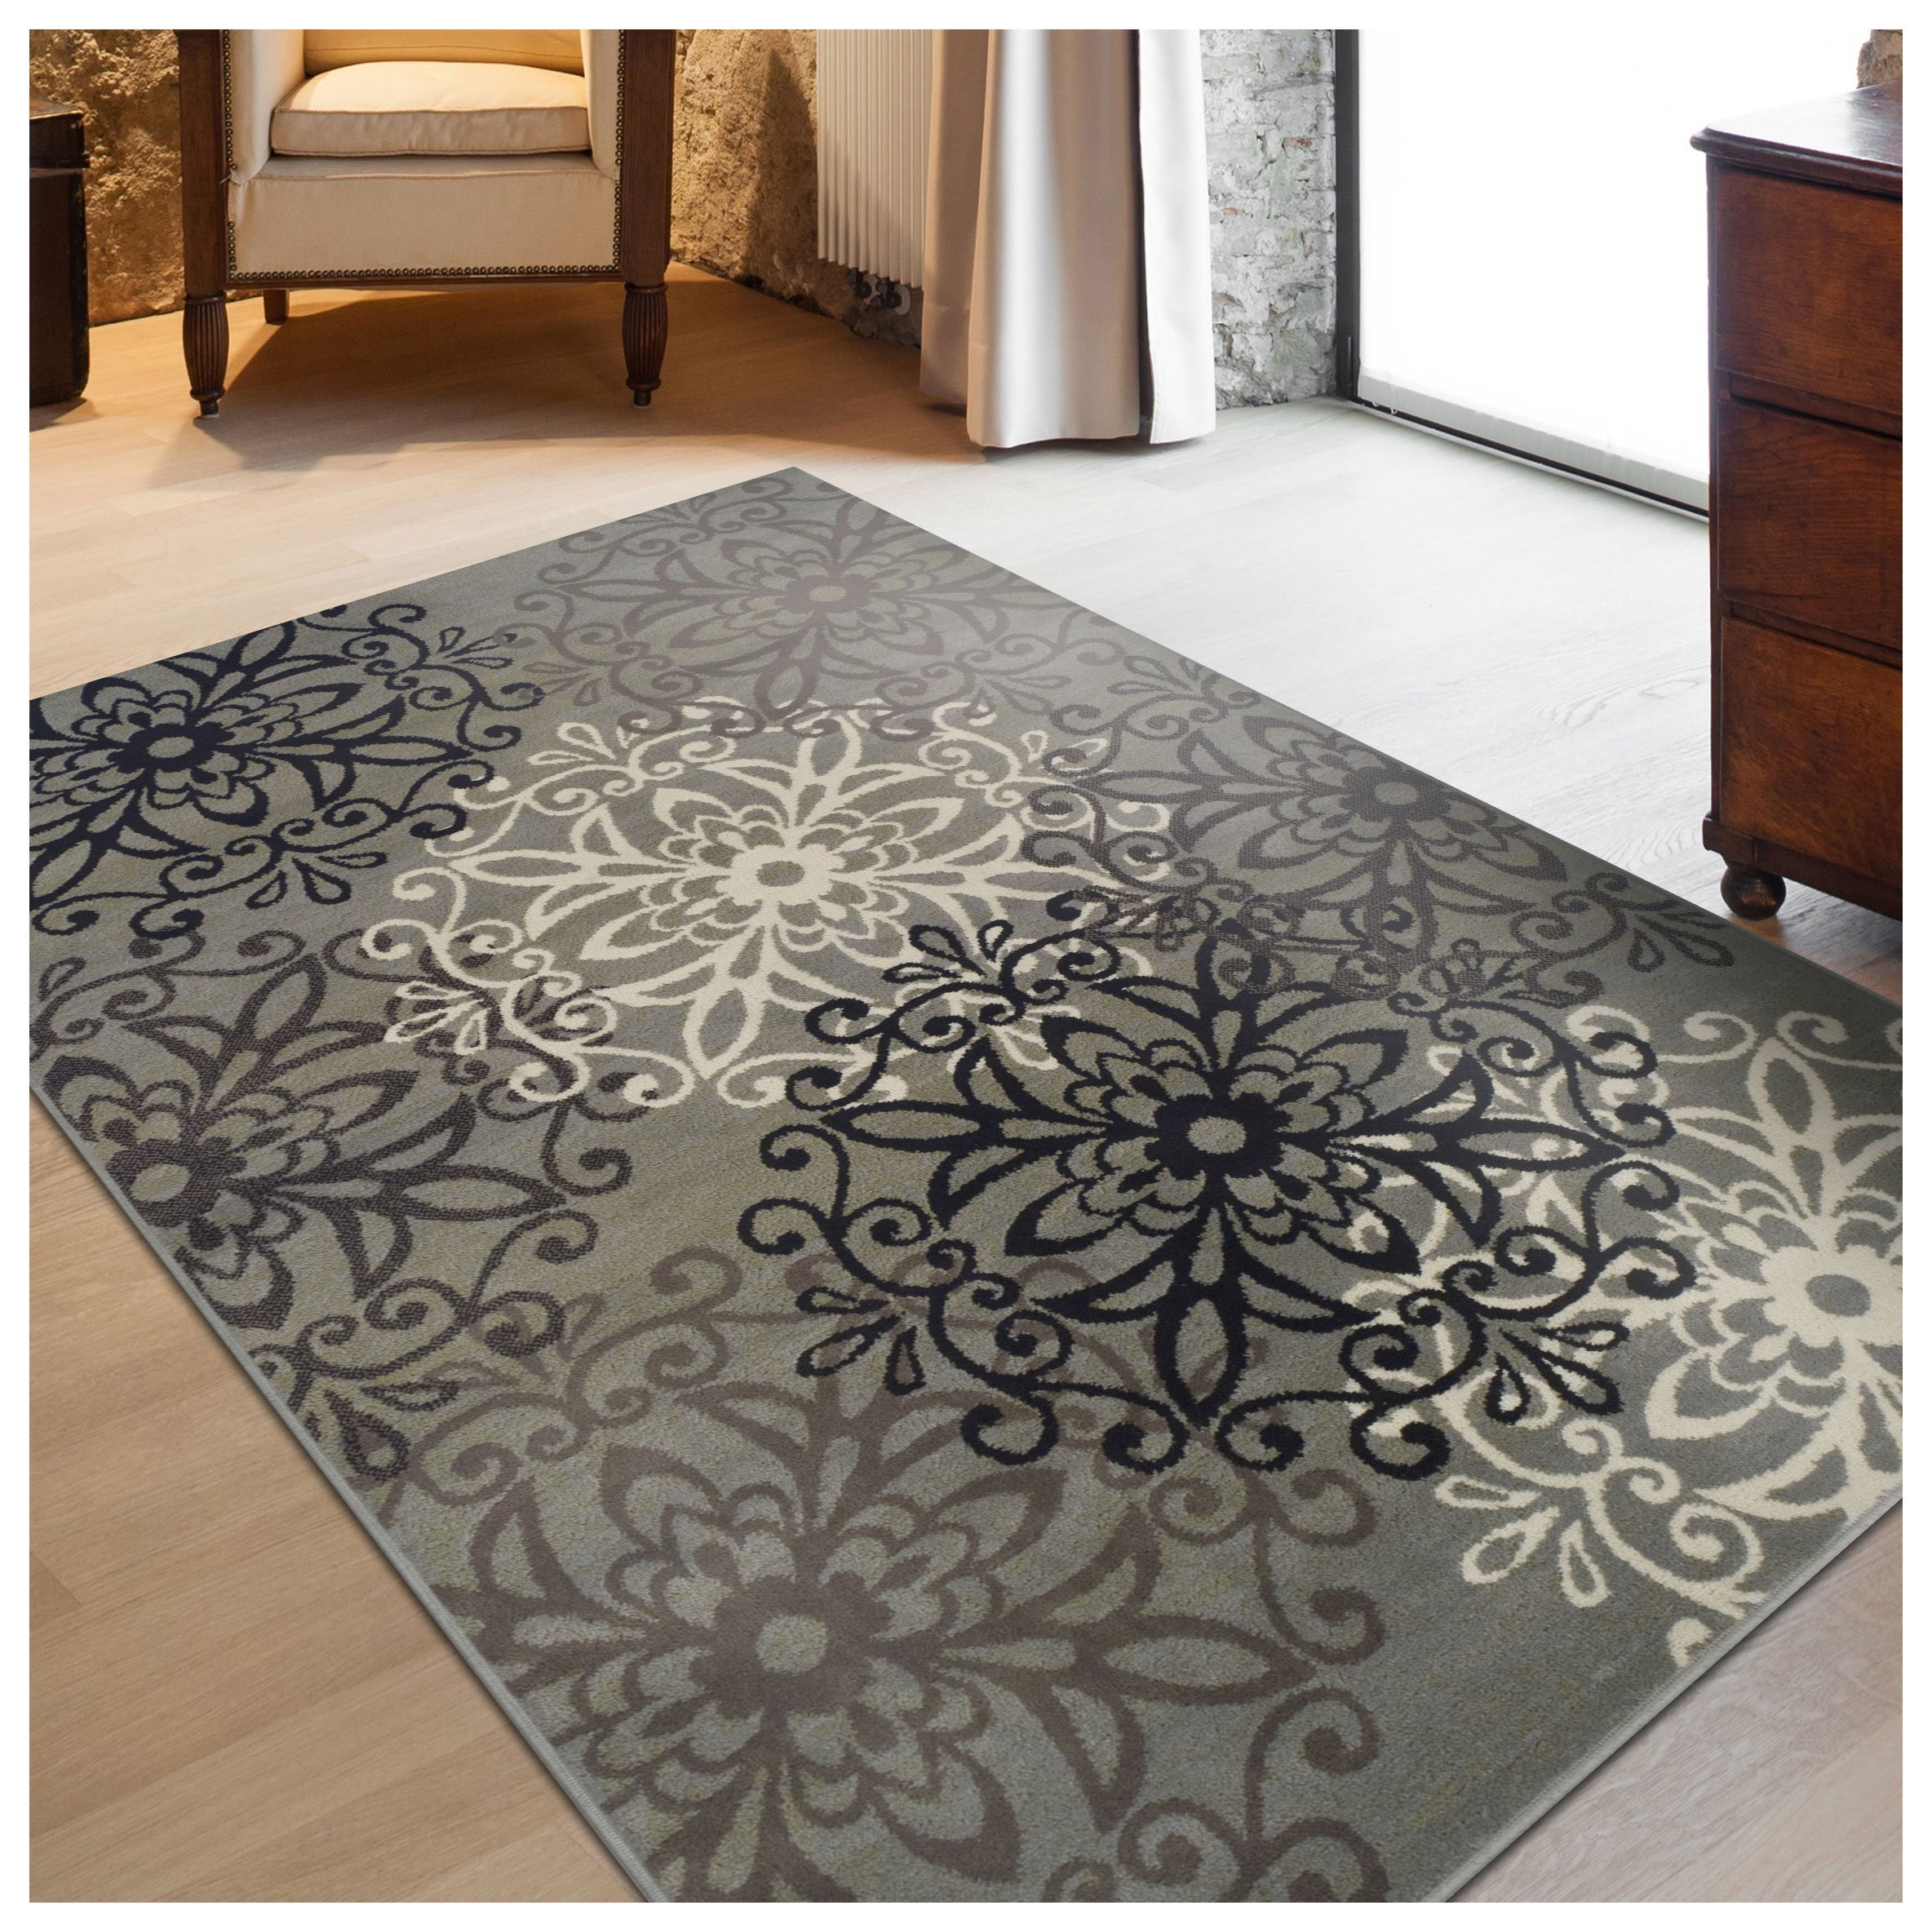 Superior Elegant Leigh Collection Area Rug, 8mm Pile Height with Jute Backing, Chic Contemporary Floral Medallion Pattern, Anti-Static, Water-Repellent Rugs - Blue, 8' x 10' Rug